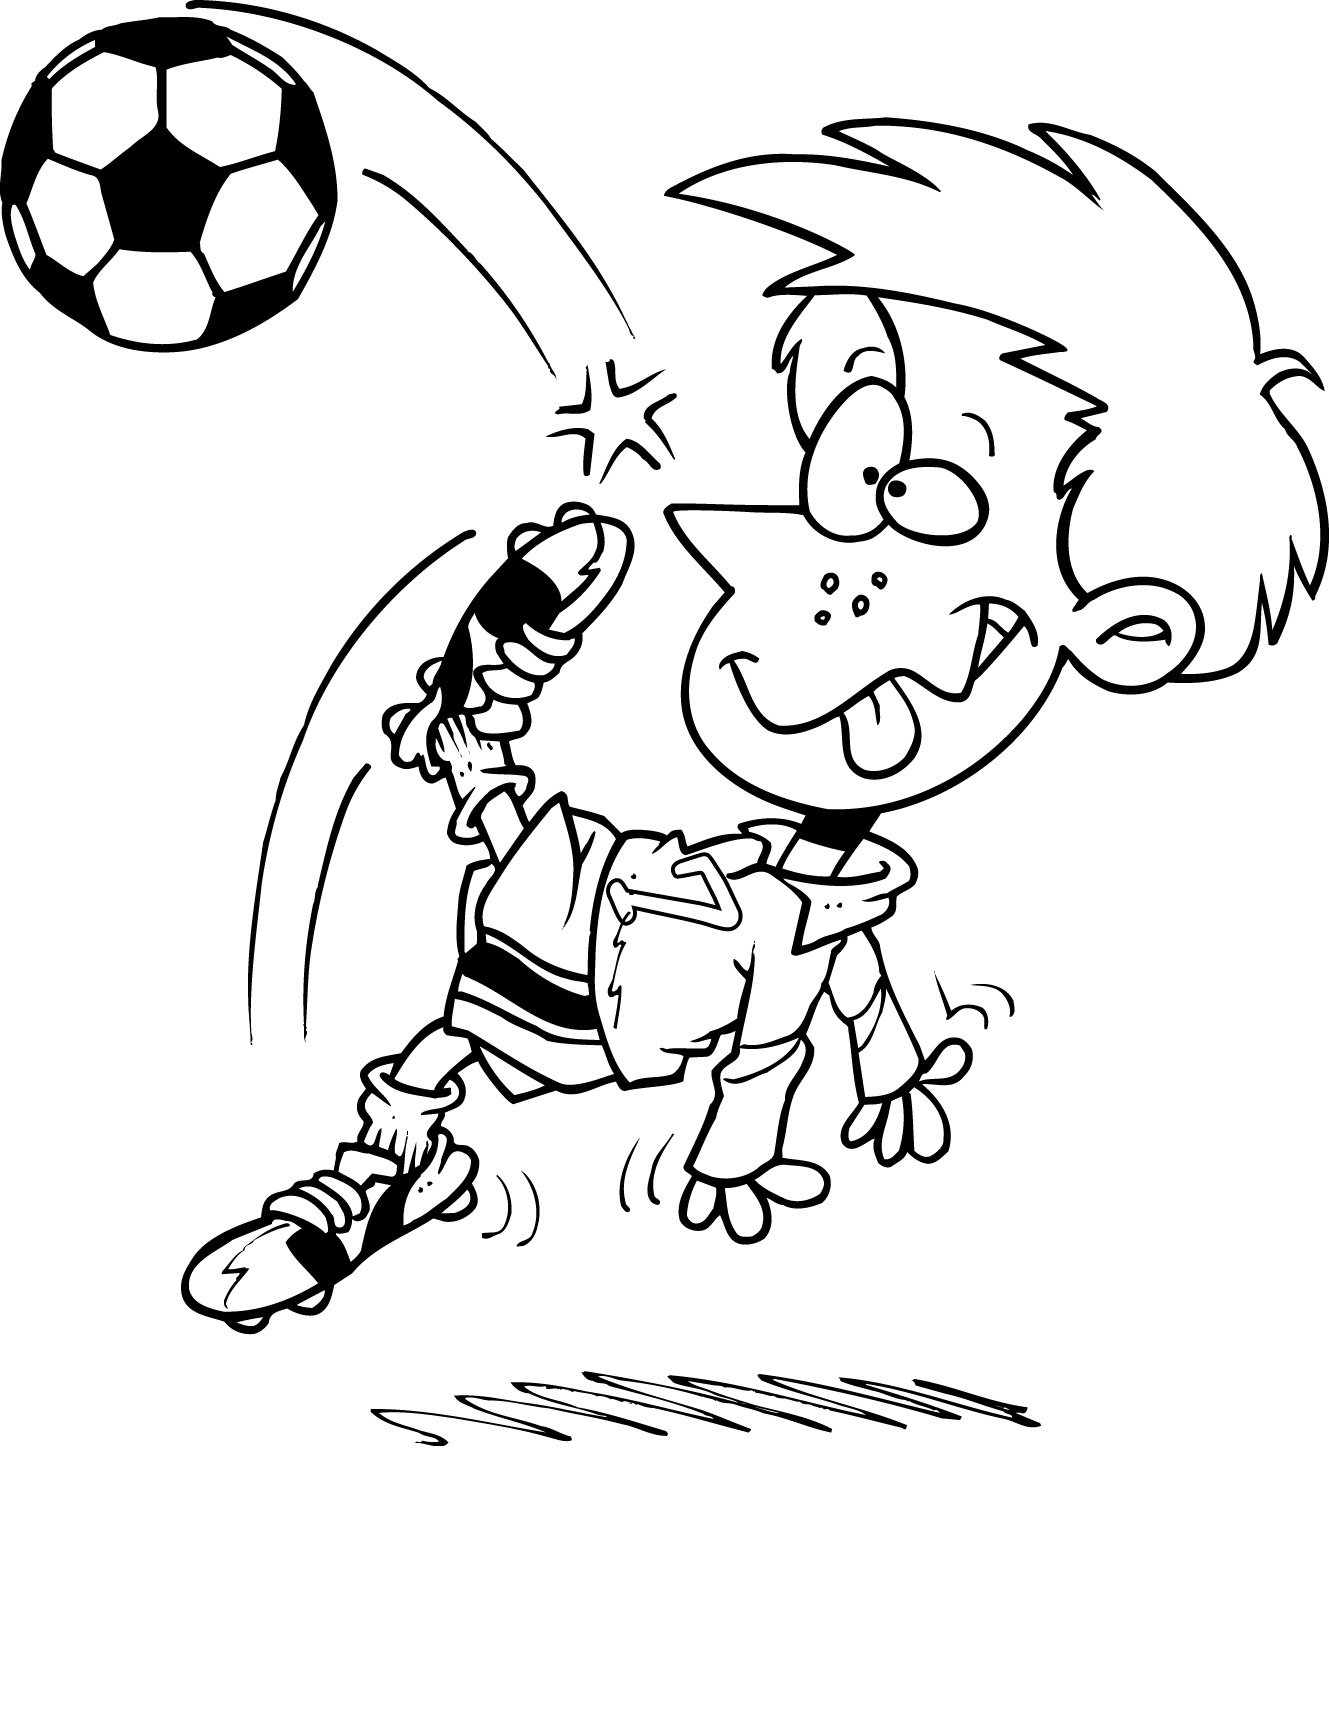 soccer pictures to color soccer ball coloring page woo jr kids activities color to pictures soccer